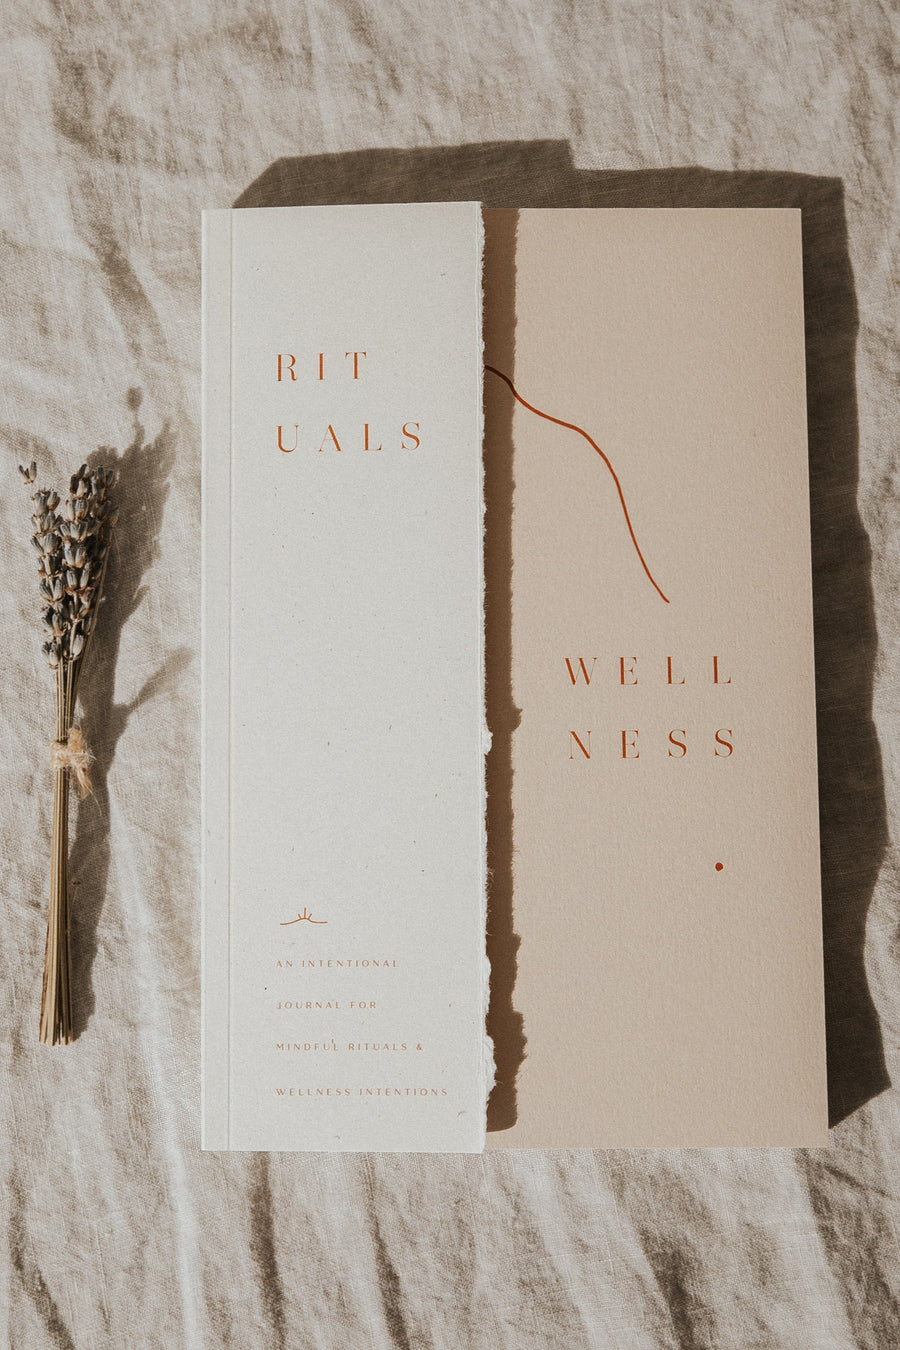 Wilde House Paper Objects White / FINAL SALE Rituals & Wellness Journal